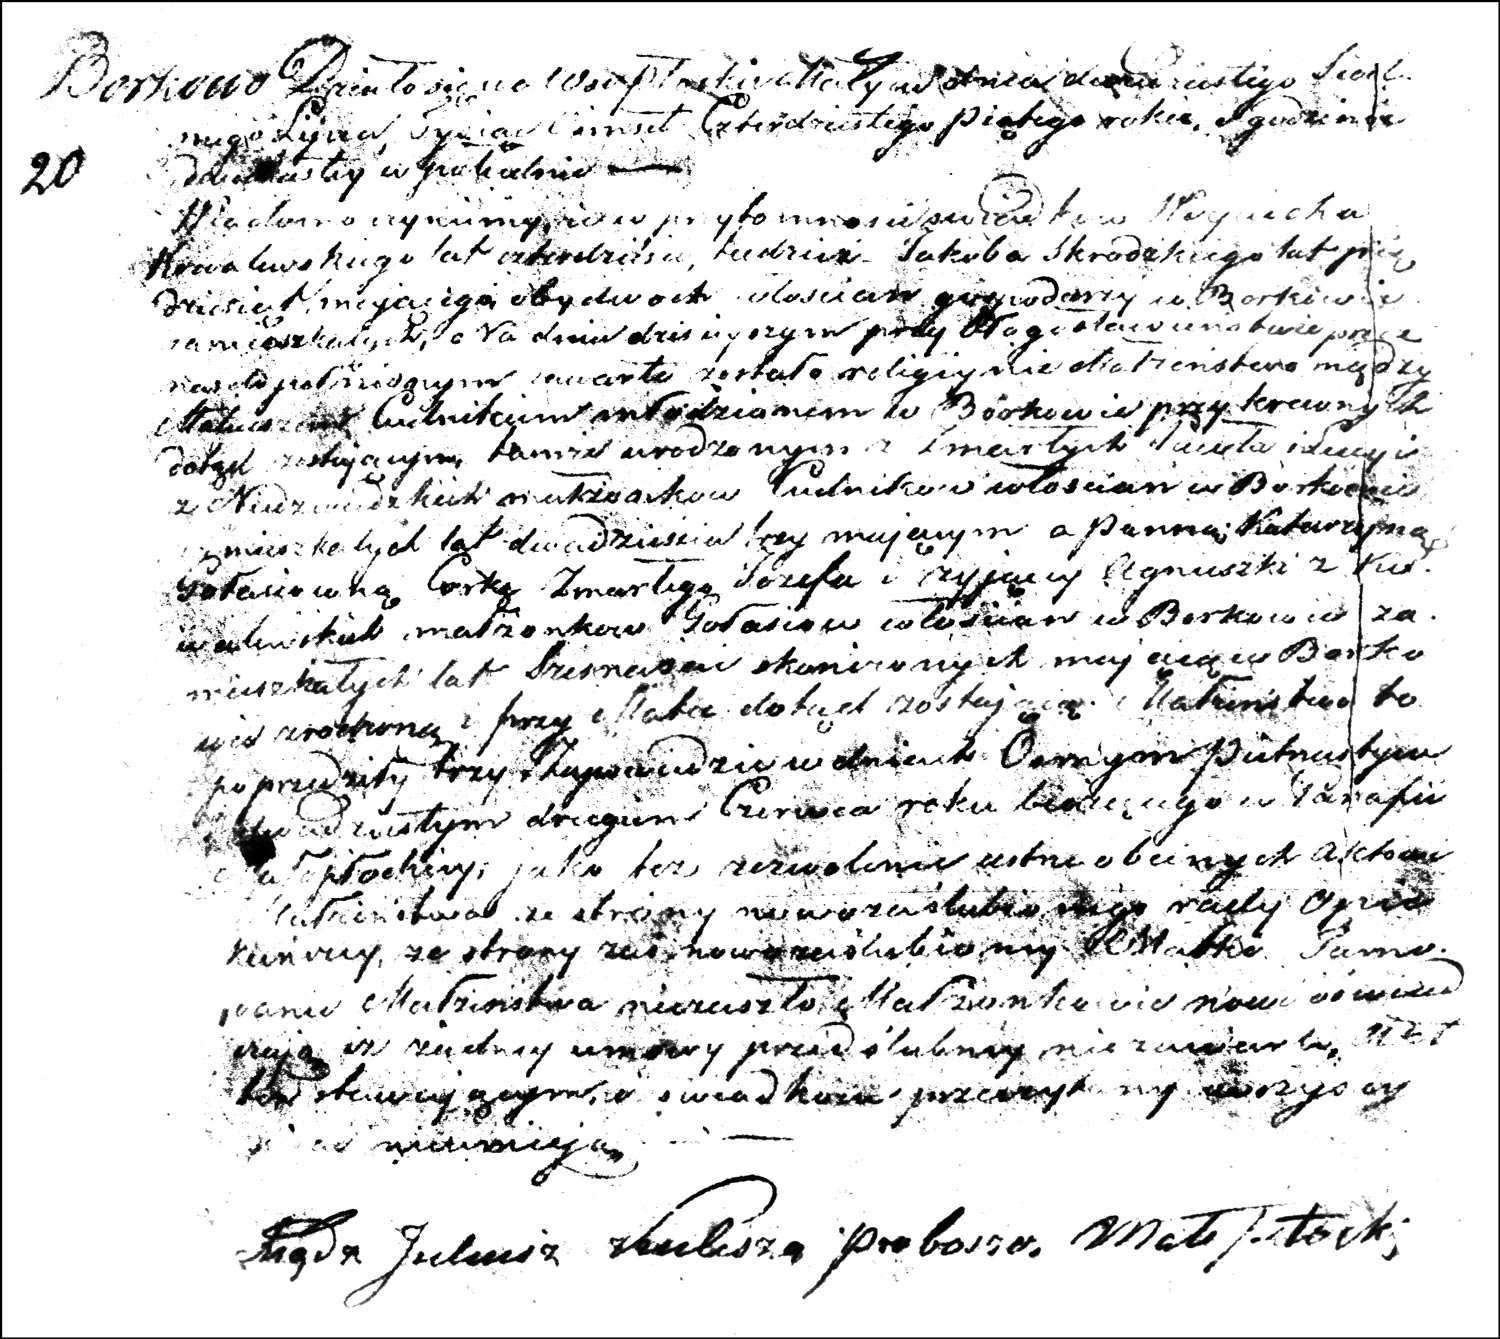 The Marriage Record of Mateusz Cudnik and Katarzyna Gołaś - 1845